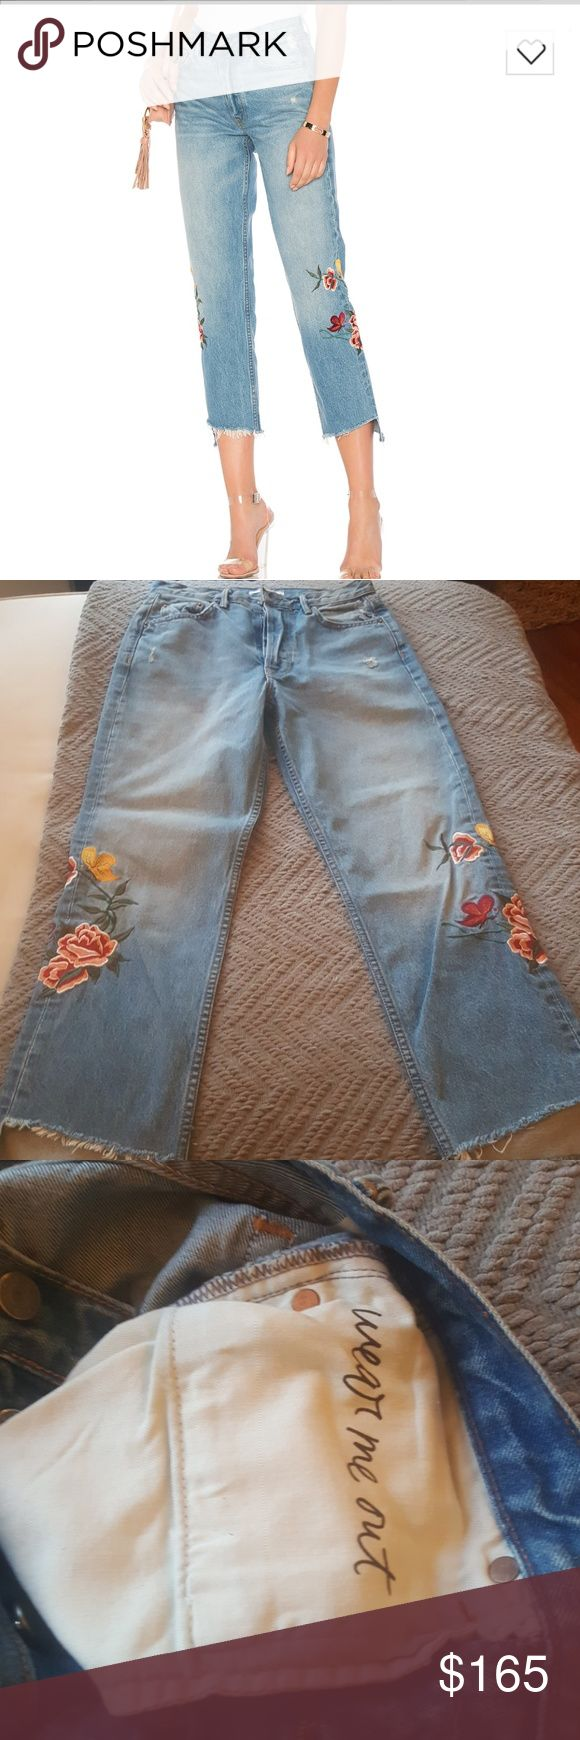 GRLFRND Helena jeans Size 26 Beautiful never worn GRLFRND Helena Jeans size 26, please note that almost all of my stuff are new w/out tags due to photo shoots. Happy Shopping. Hope this make someone Happy! 🌞🌞 GRLFRND Jeans Ankle & Cropped